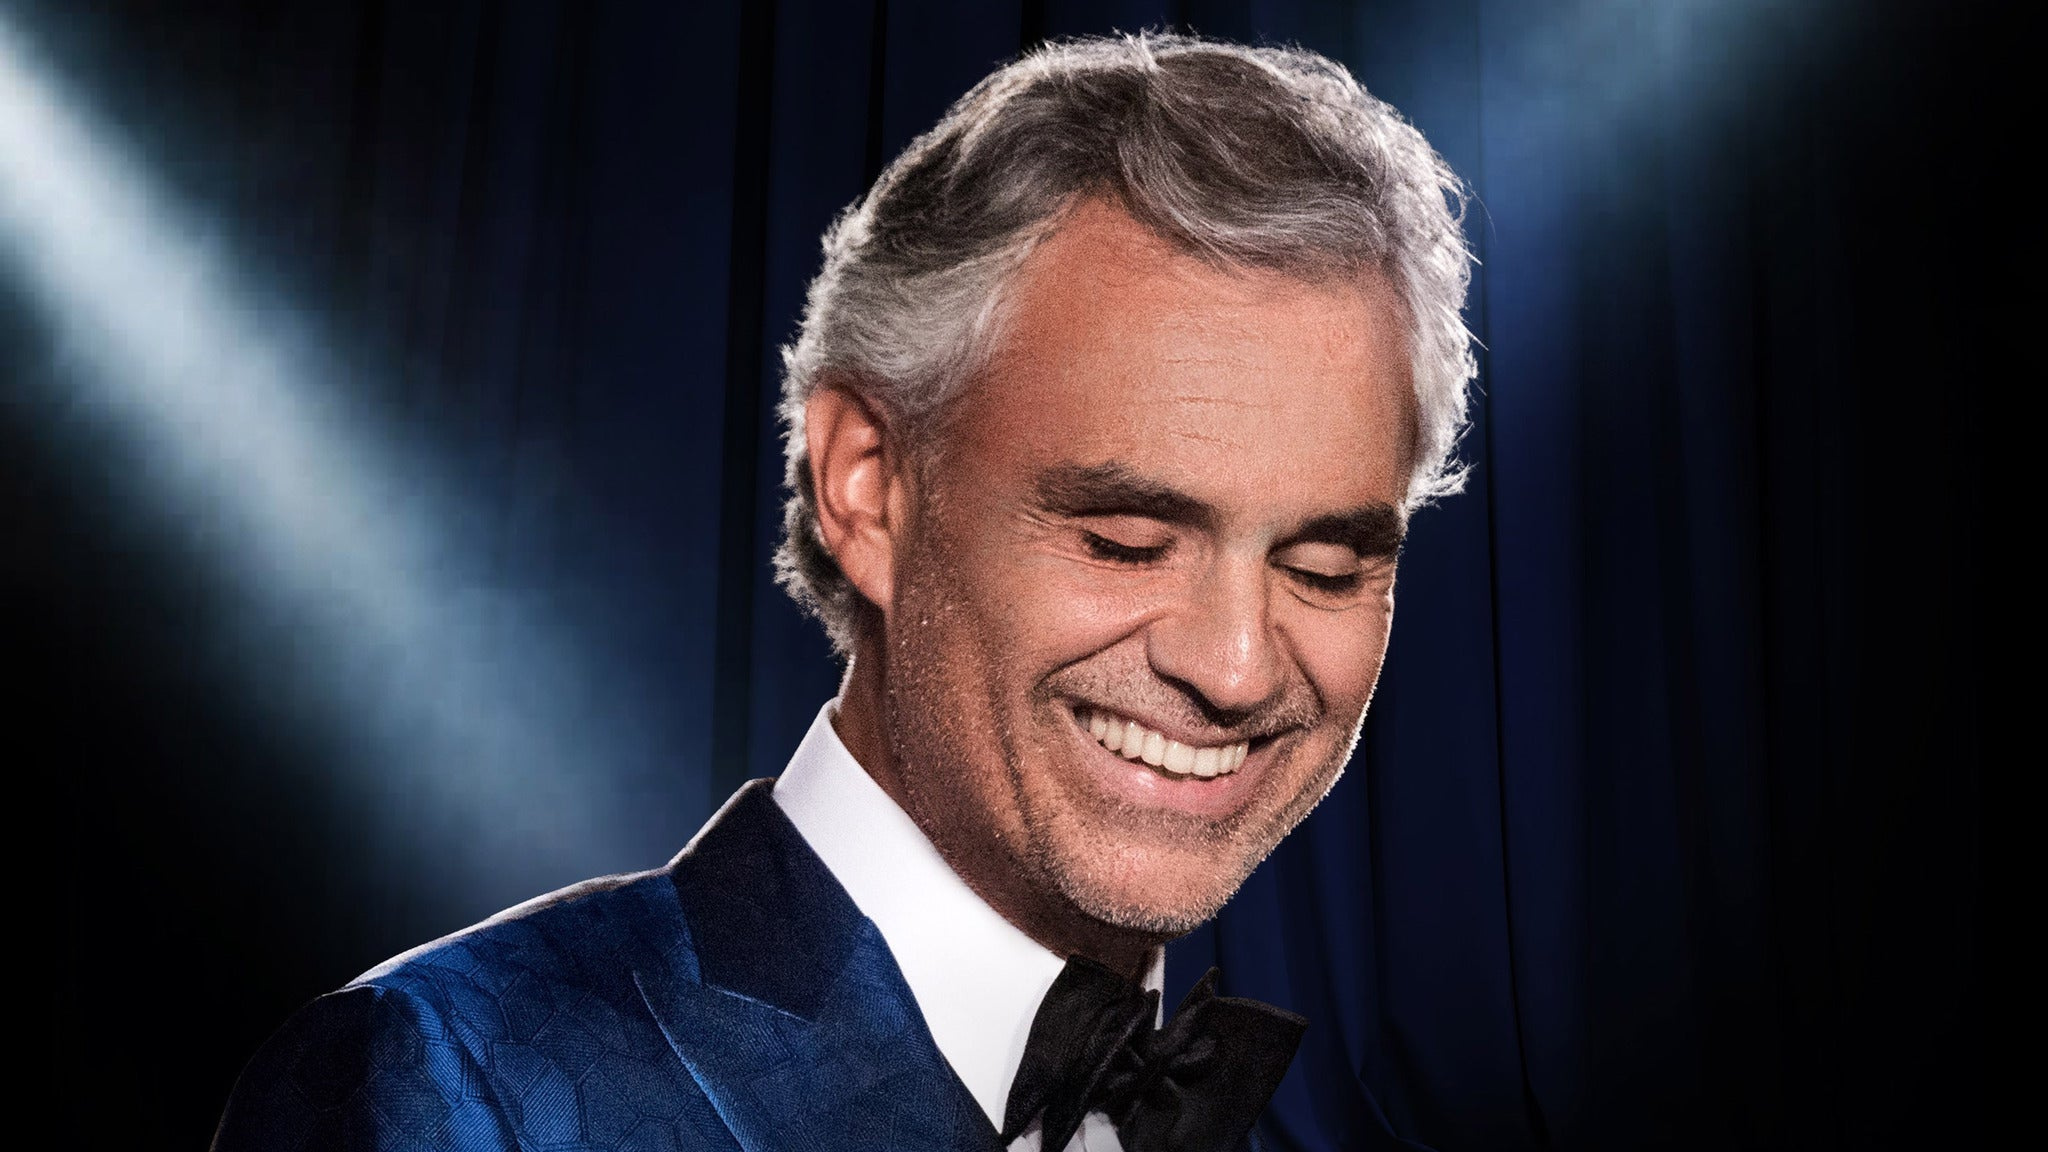 Andrea Bocelli at SAP Center at San Jose